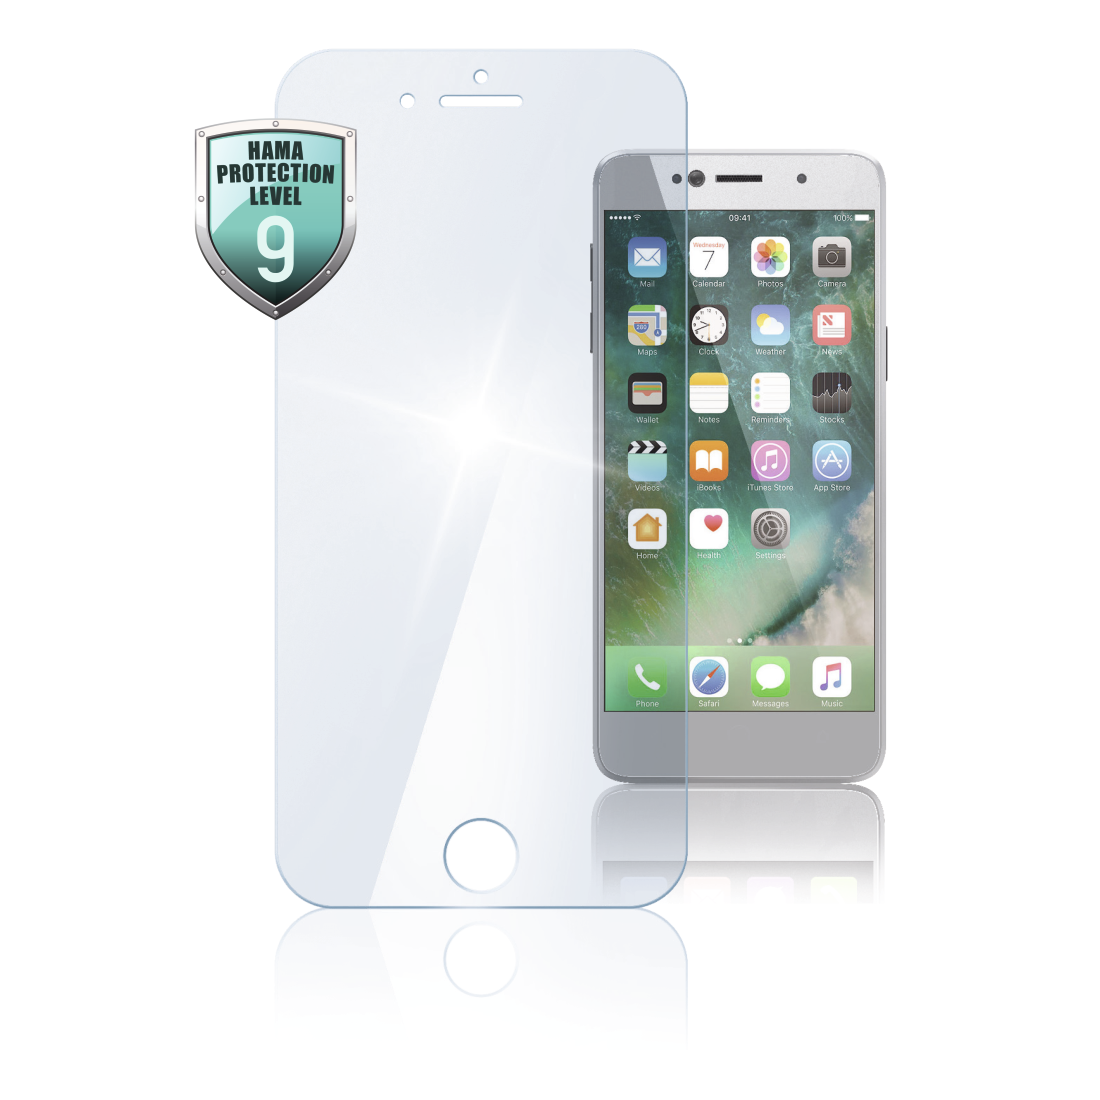 "abx High-Res Image - Hama, Protect. d'écran verre vér. ""Premium Crystal Glass"" pour iPhone5/5s/5c/SE"